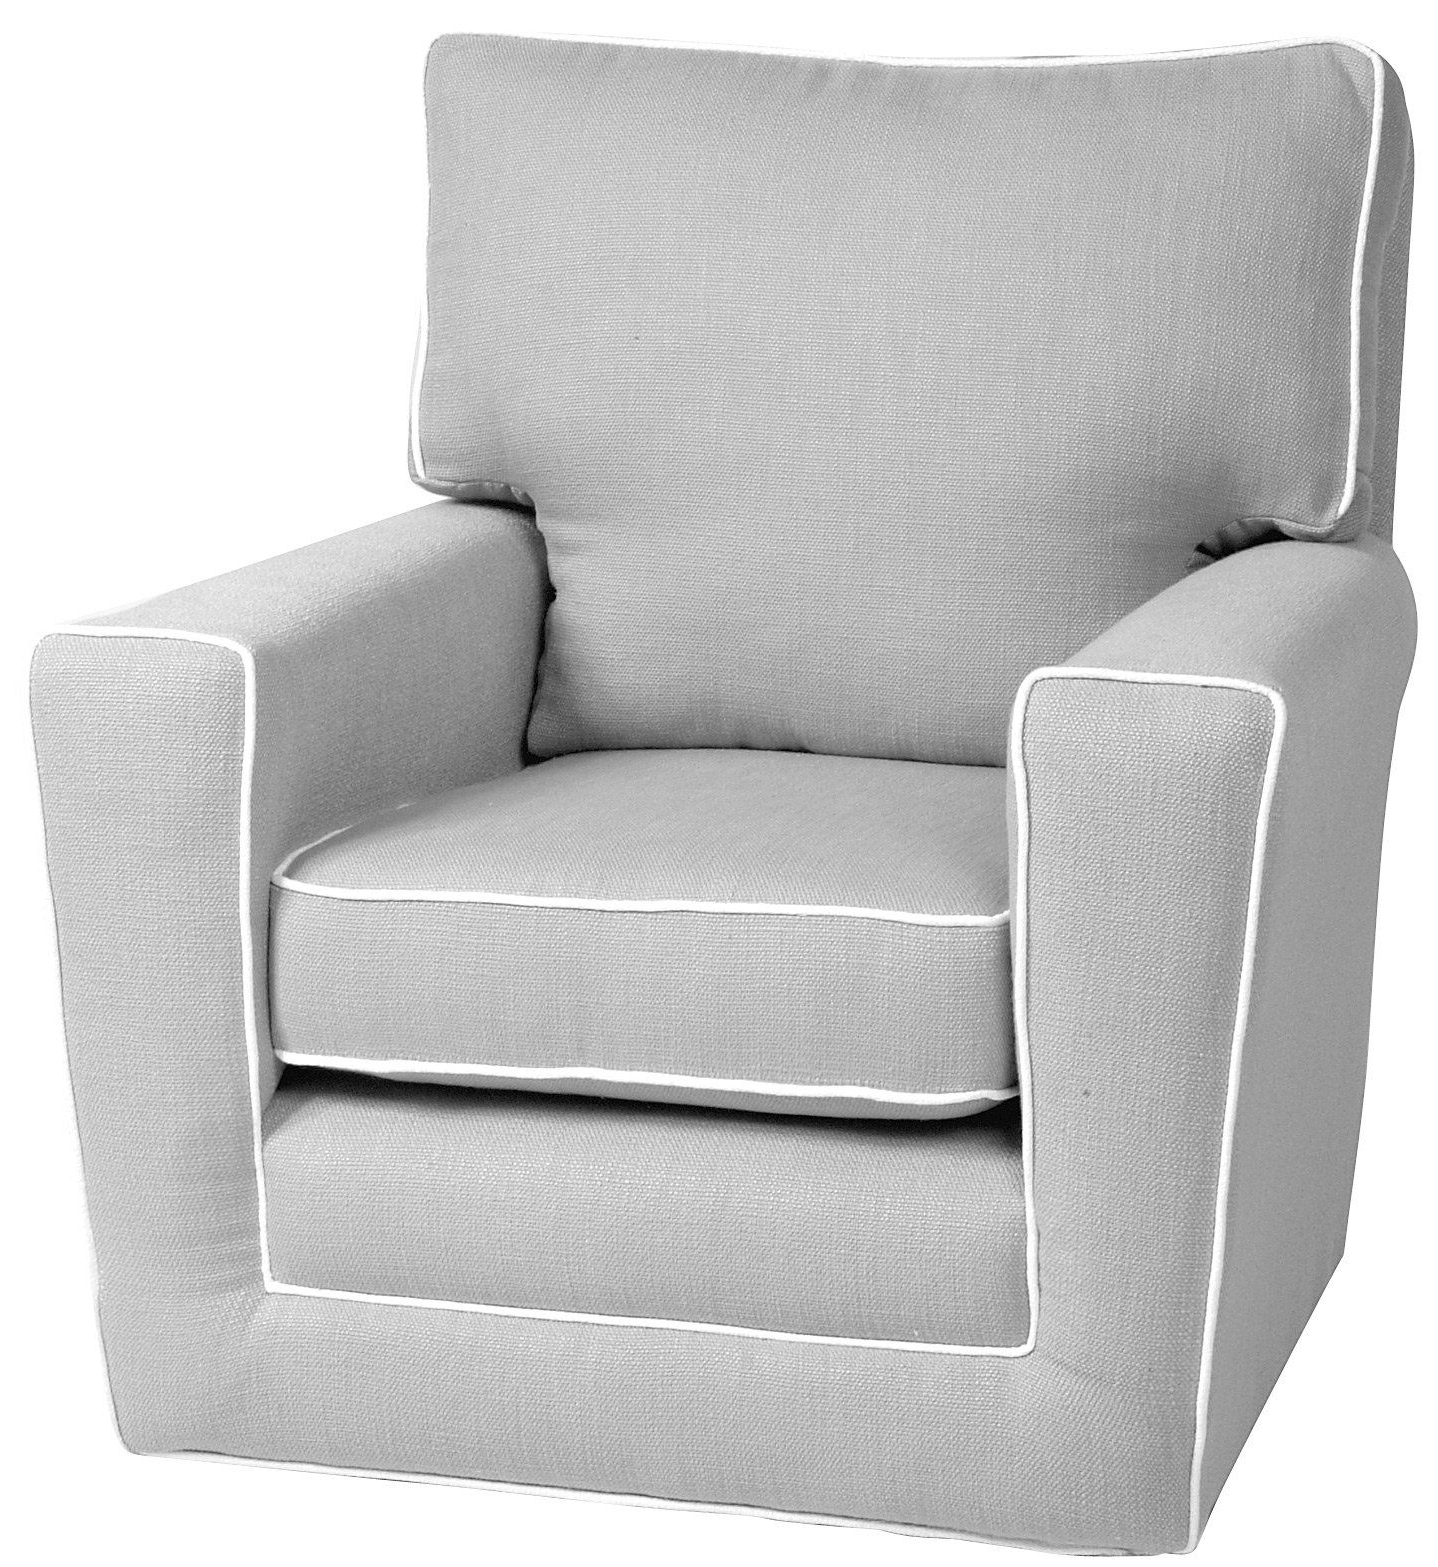 Katrina Grey Swivel Glider Chairs Throughout 2019 I Will Own A Little Castle Recliner For My Nursery No Way I'd Buy (Gallery 6 of 20)